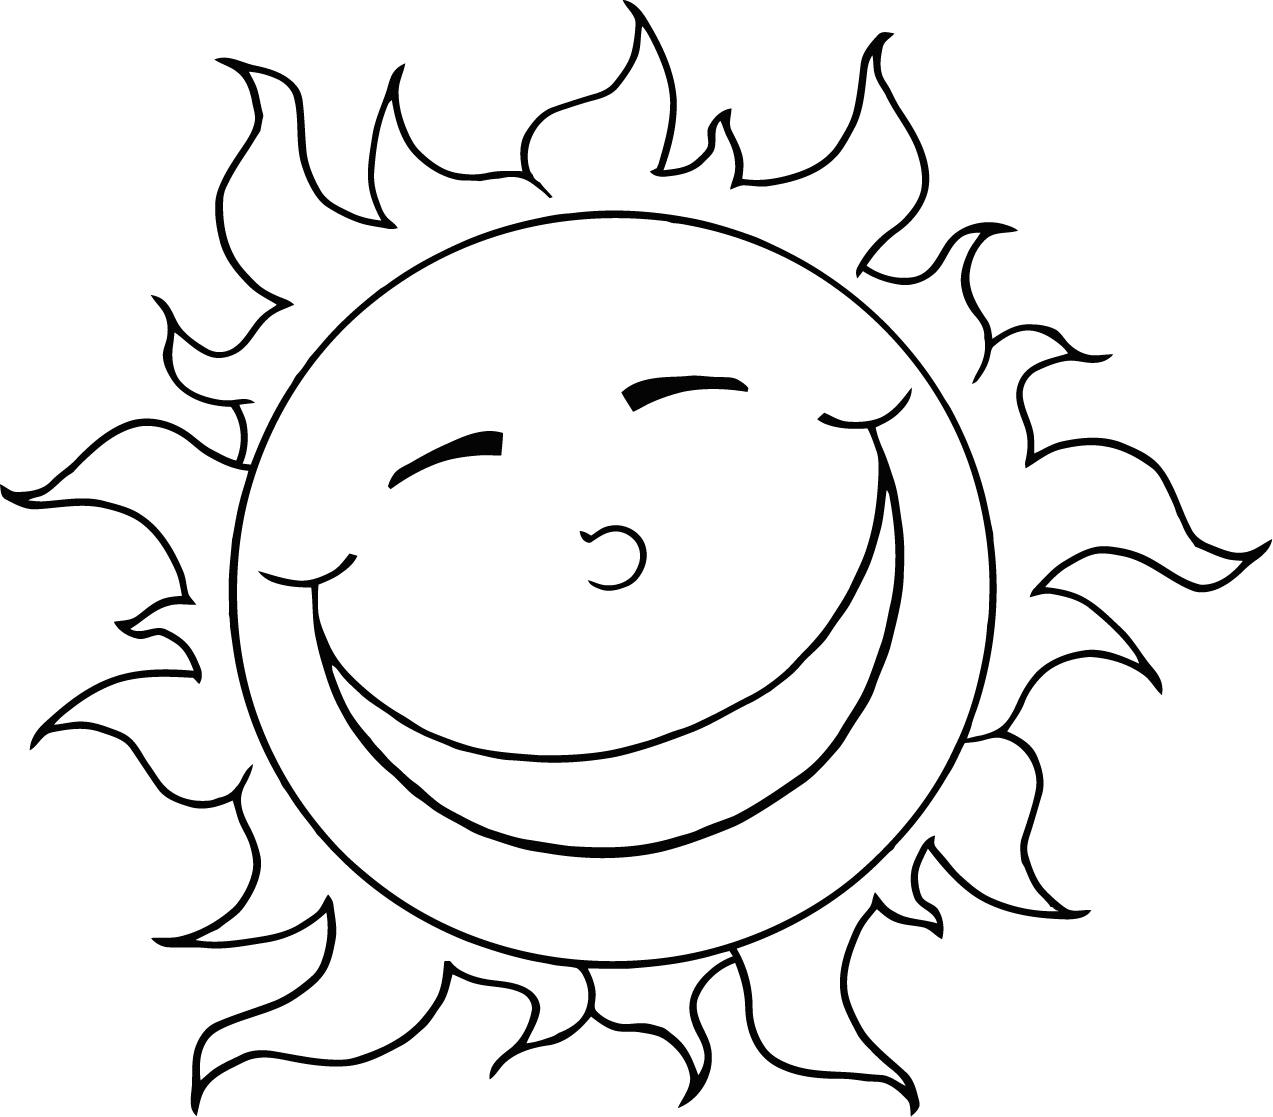 1273x1117 Free Printable Sun Coloring Pages For Kids